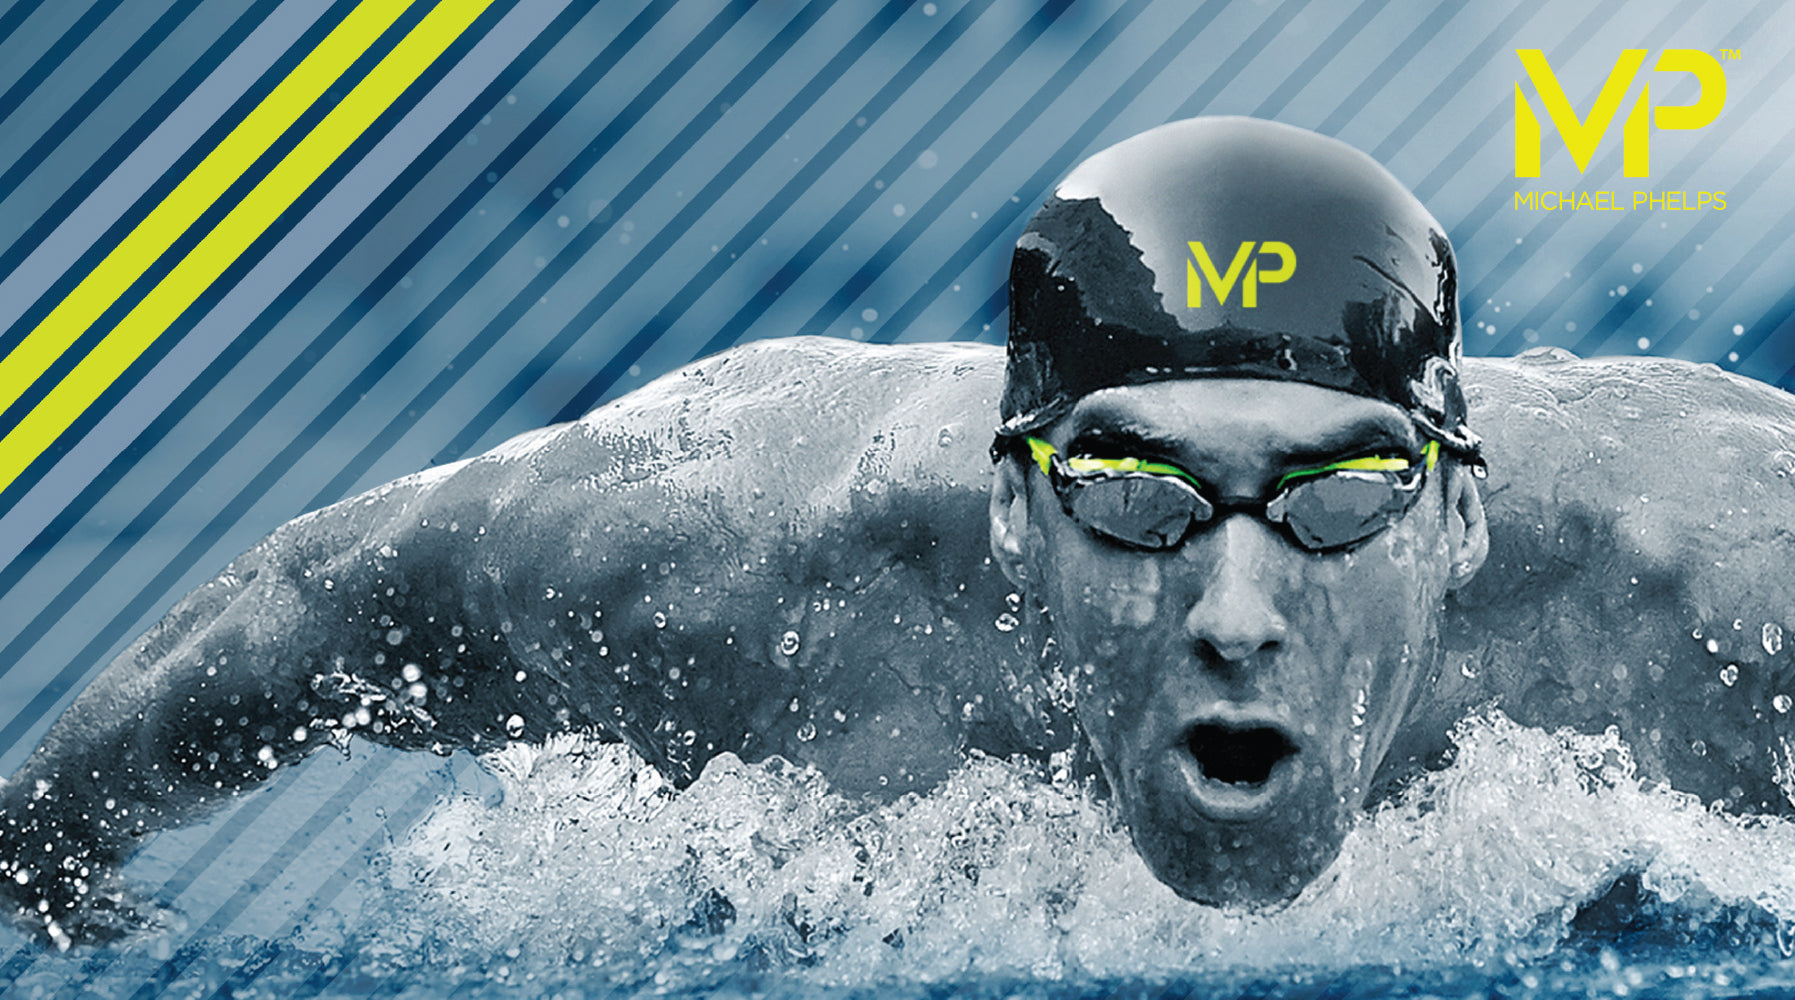 Mp Michael Phelps Swimming Goggles Swimsuits Key